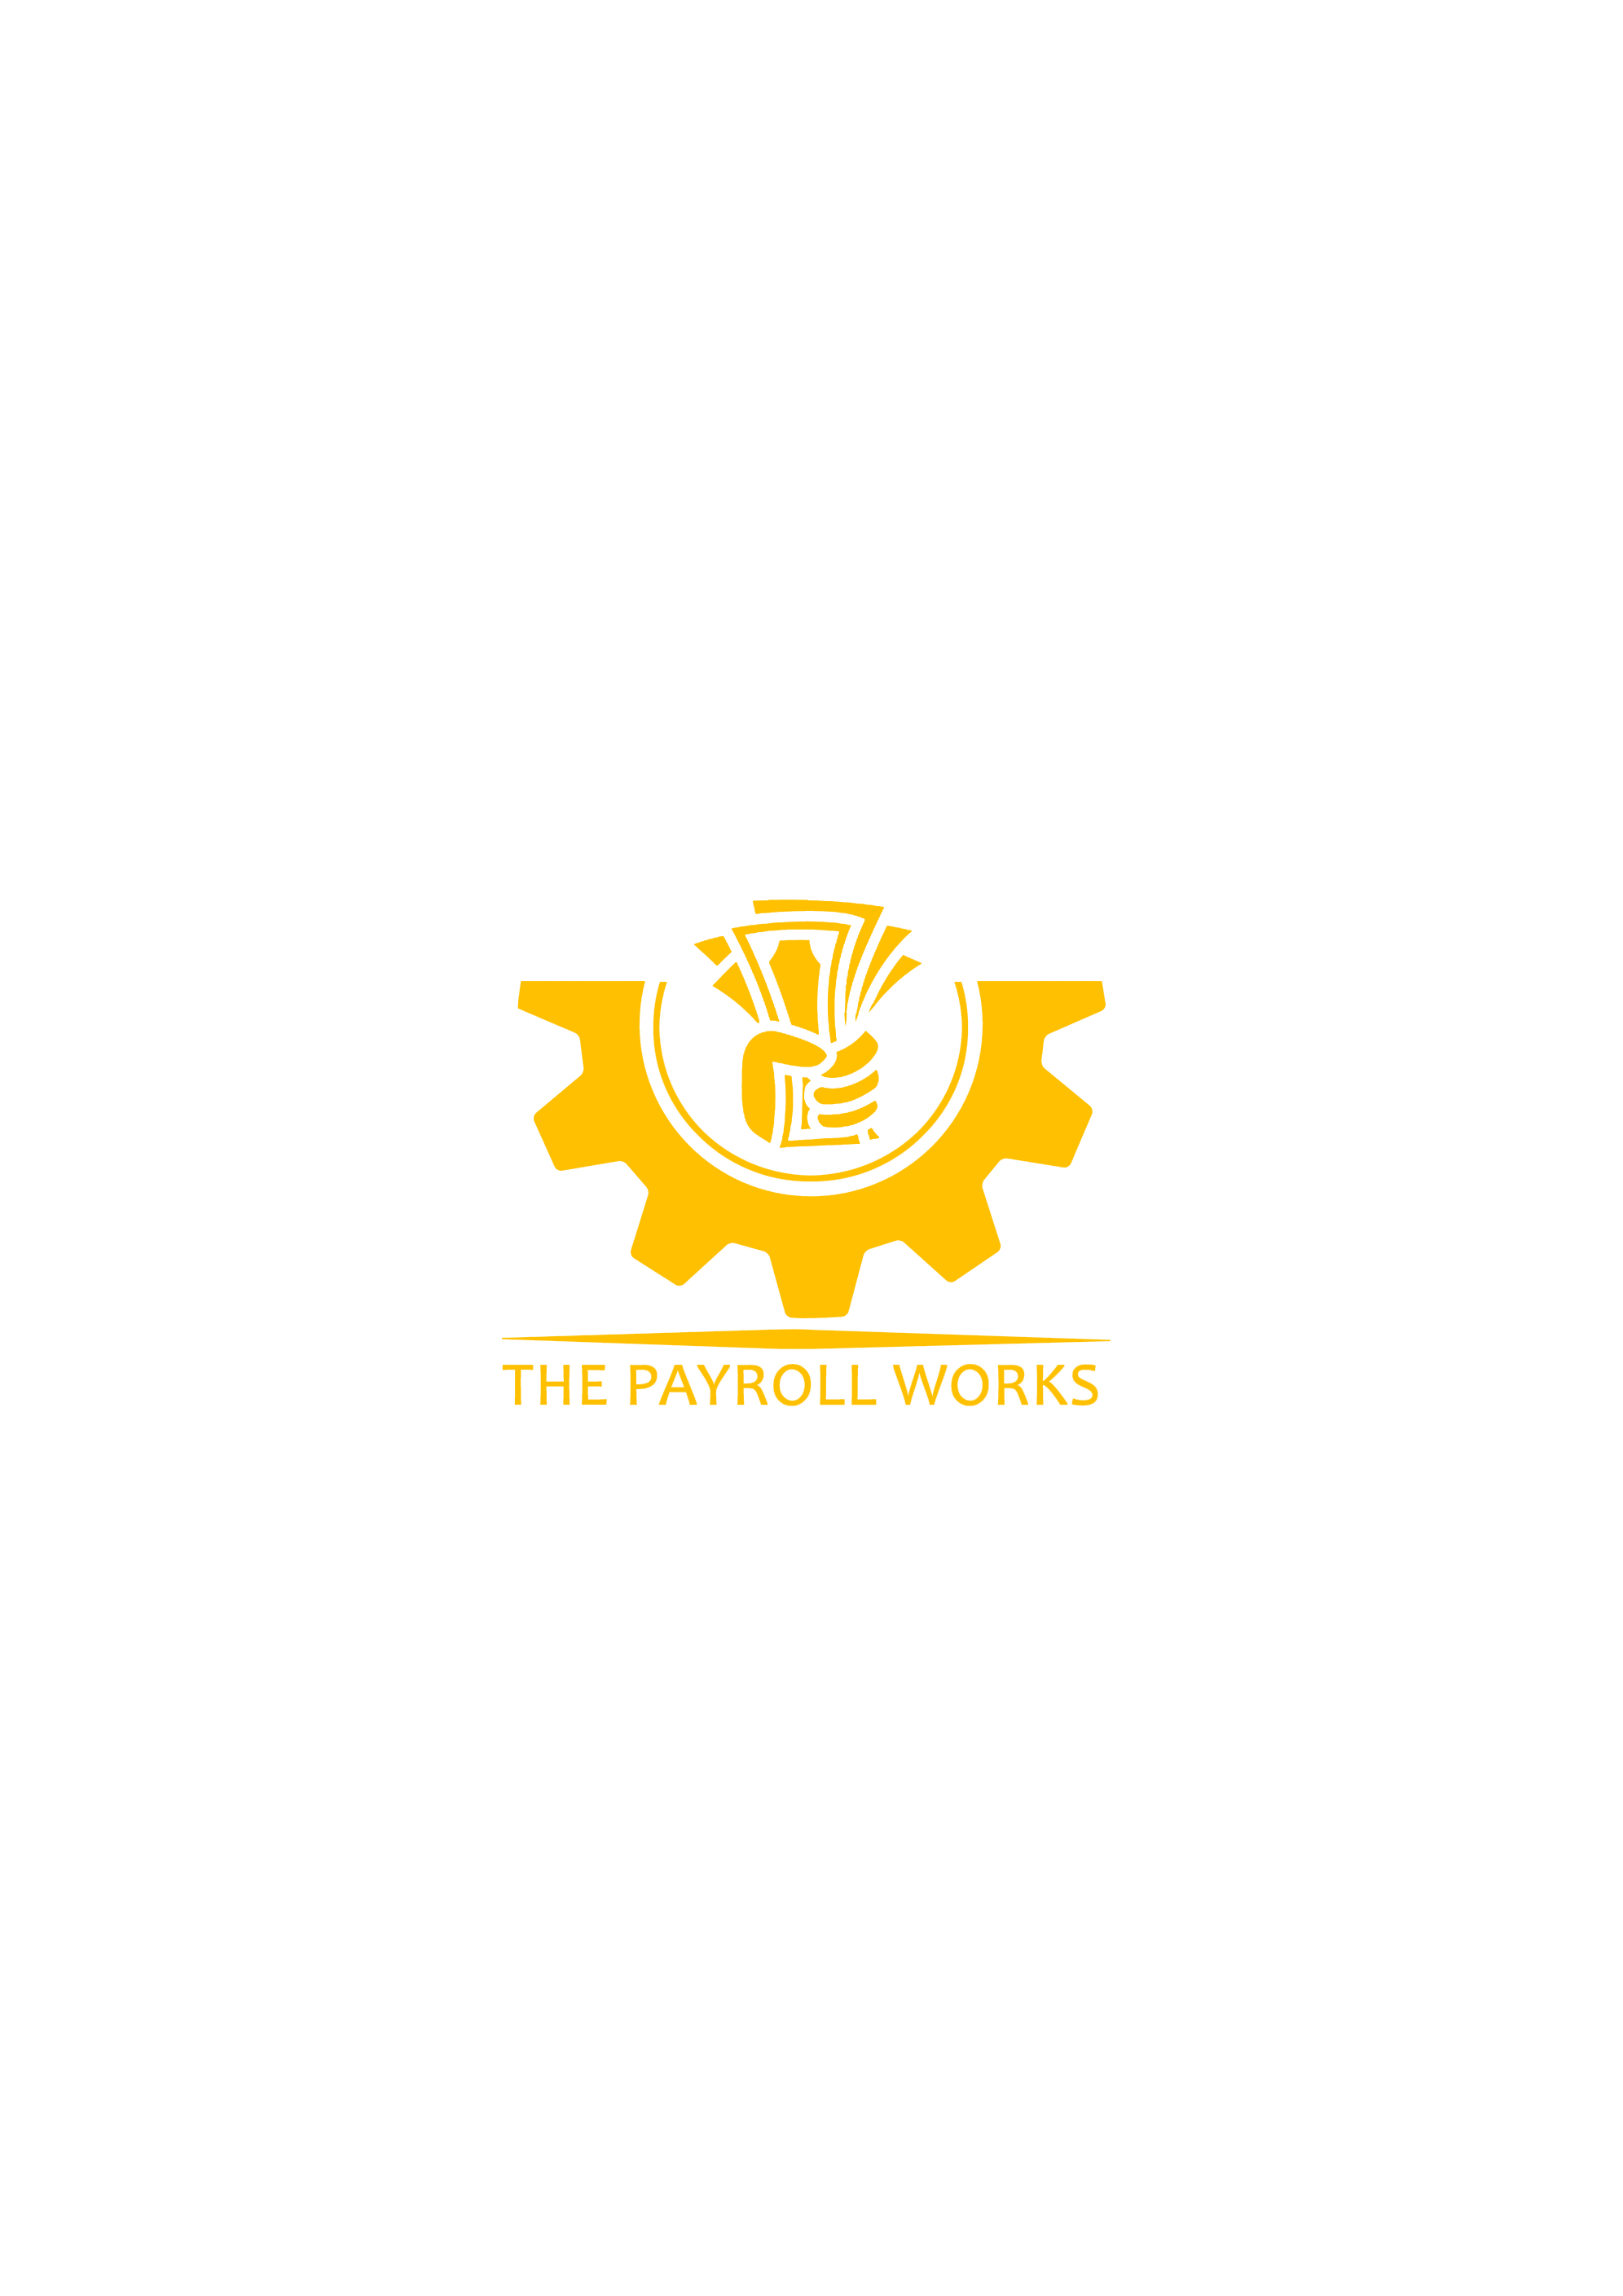 Logo Design by JSDESIGNGROUP - Entry No. 107 in the Logo Design Contest Captivating Logo Design for The Payroll Works.